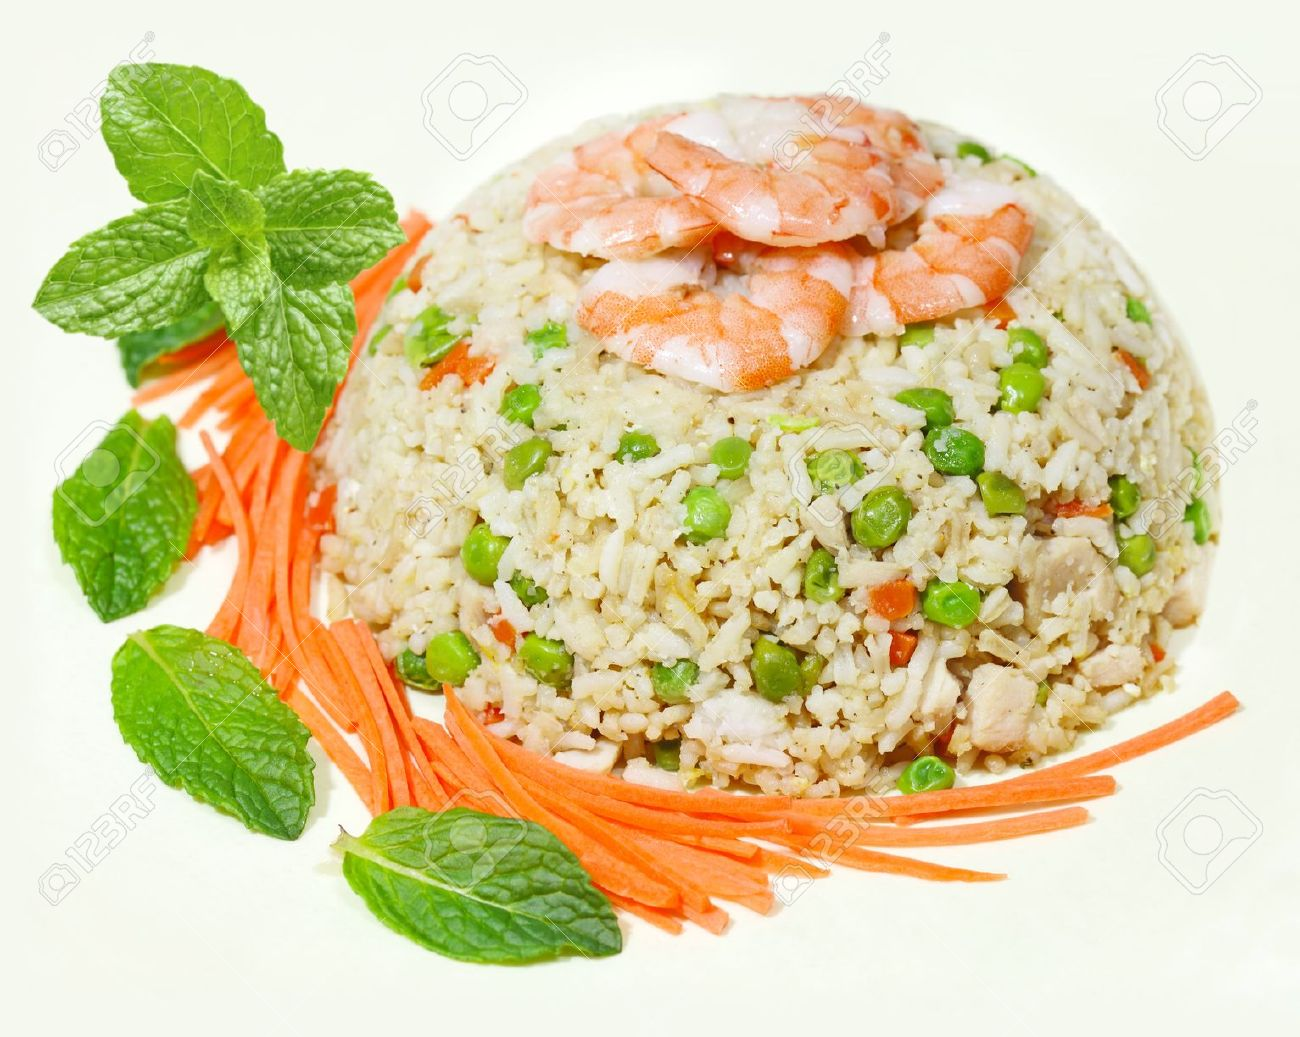 Image result for Rice Culture in Vietnam